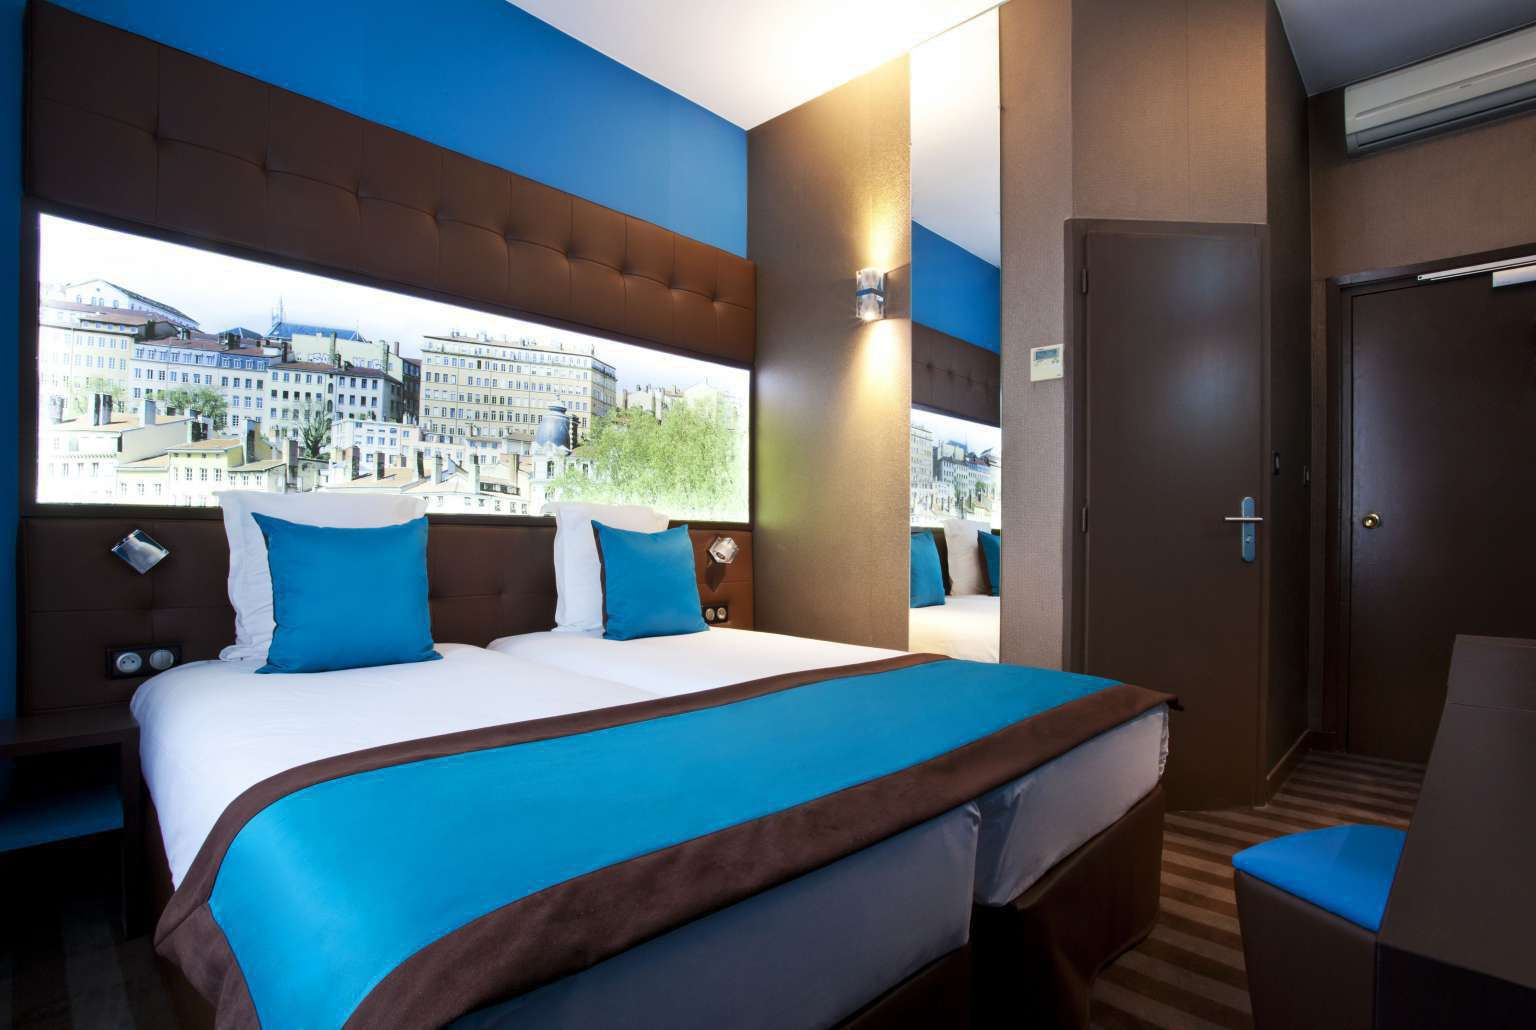 Double Rooms of the 3 Designer Hotel in Lyon  2nd arr  Htel des Savoies